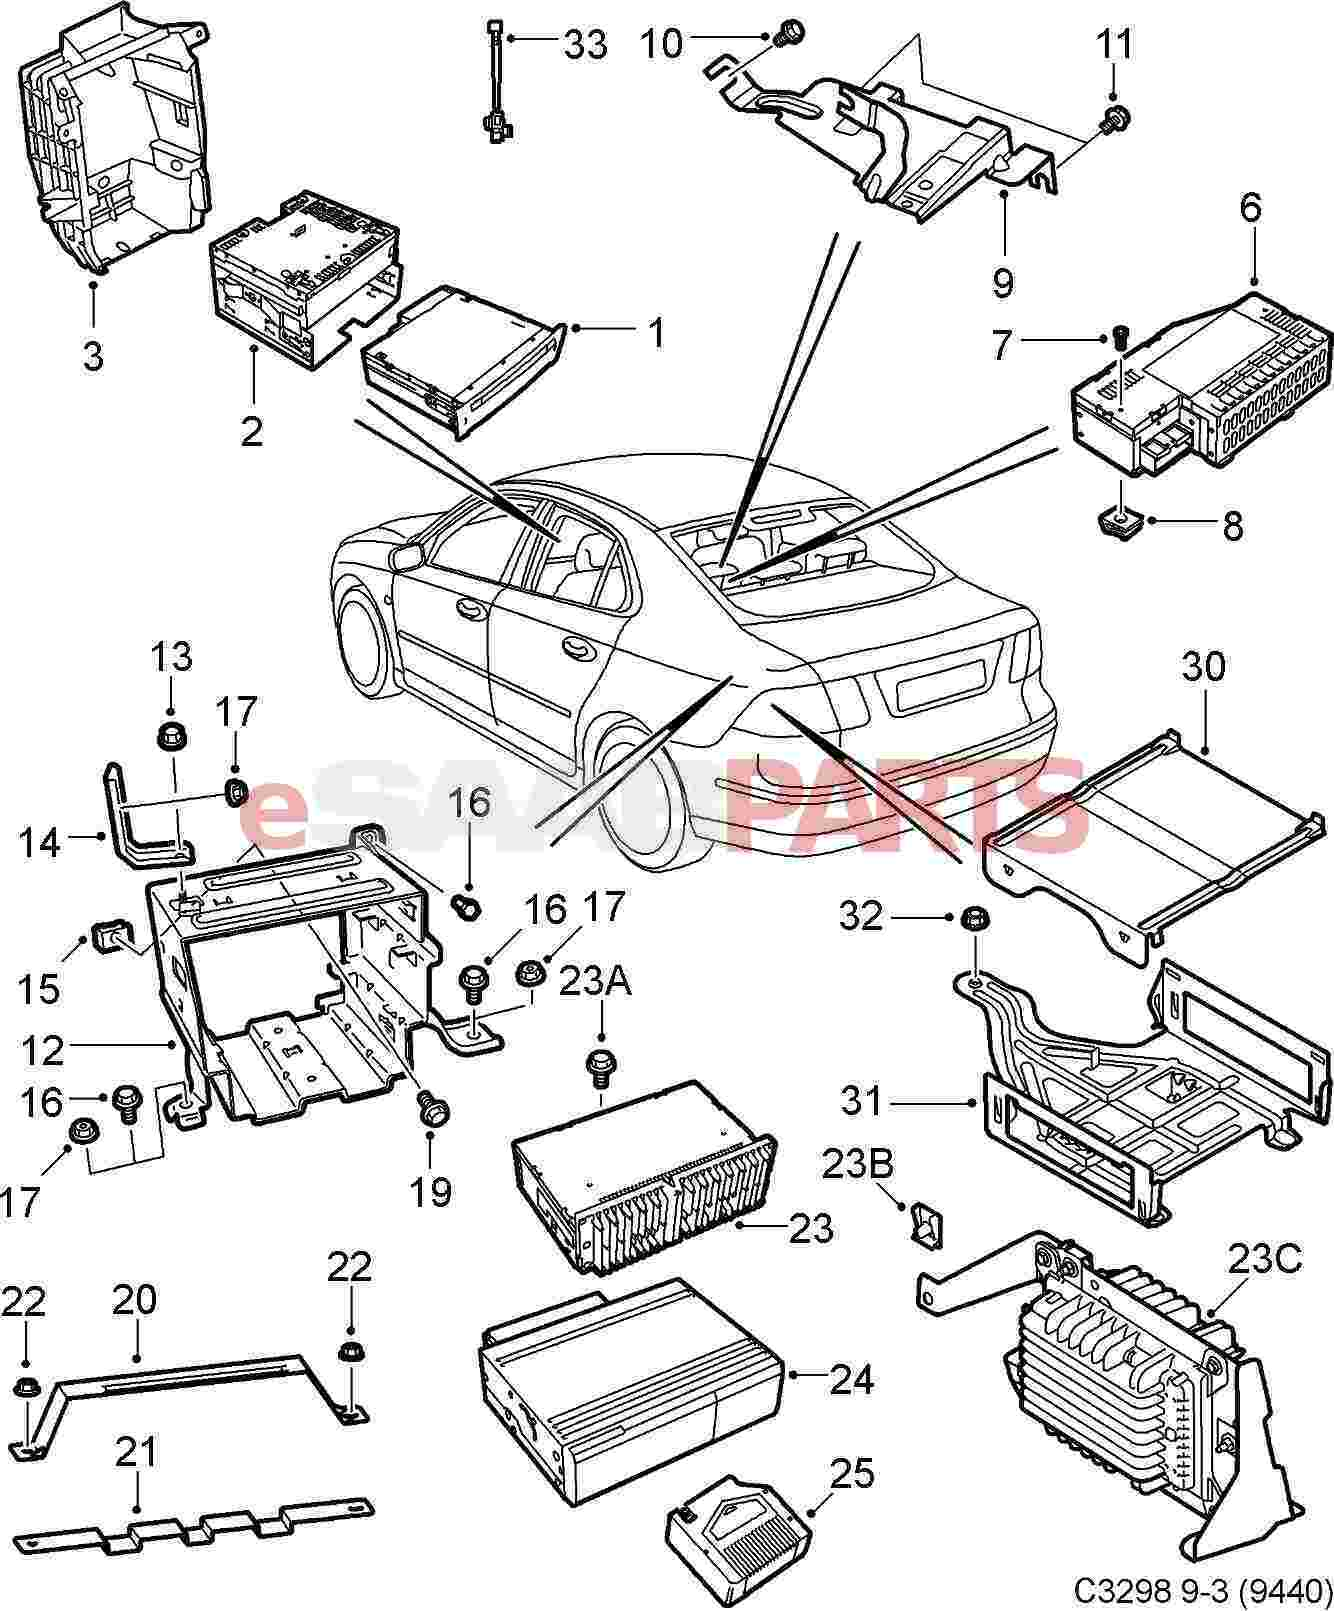 2004 Saab 9 3 Amp2 Wiring Diagram : 33 Wiring Diagram